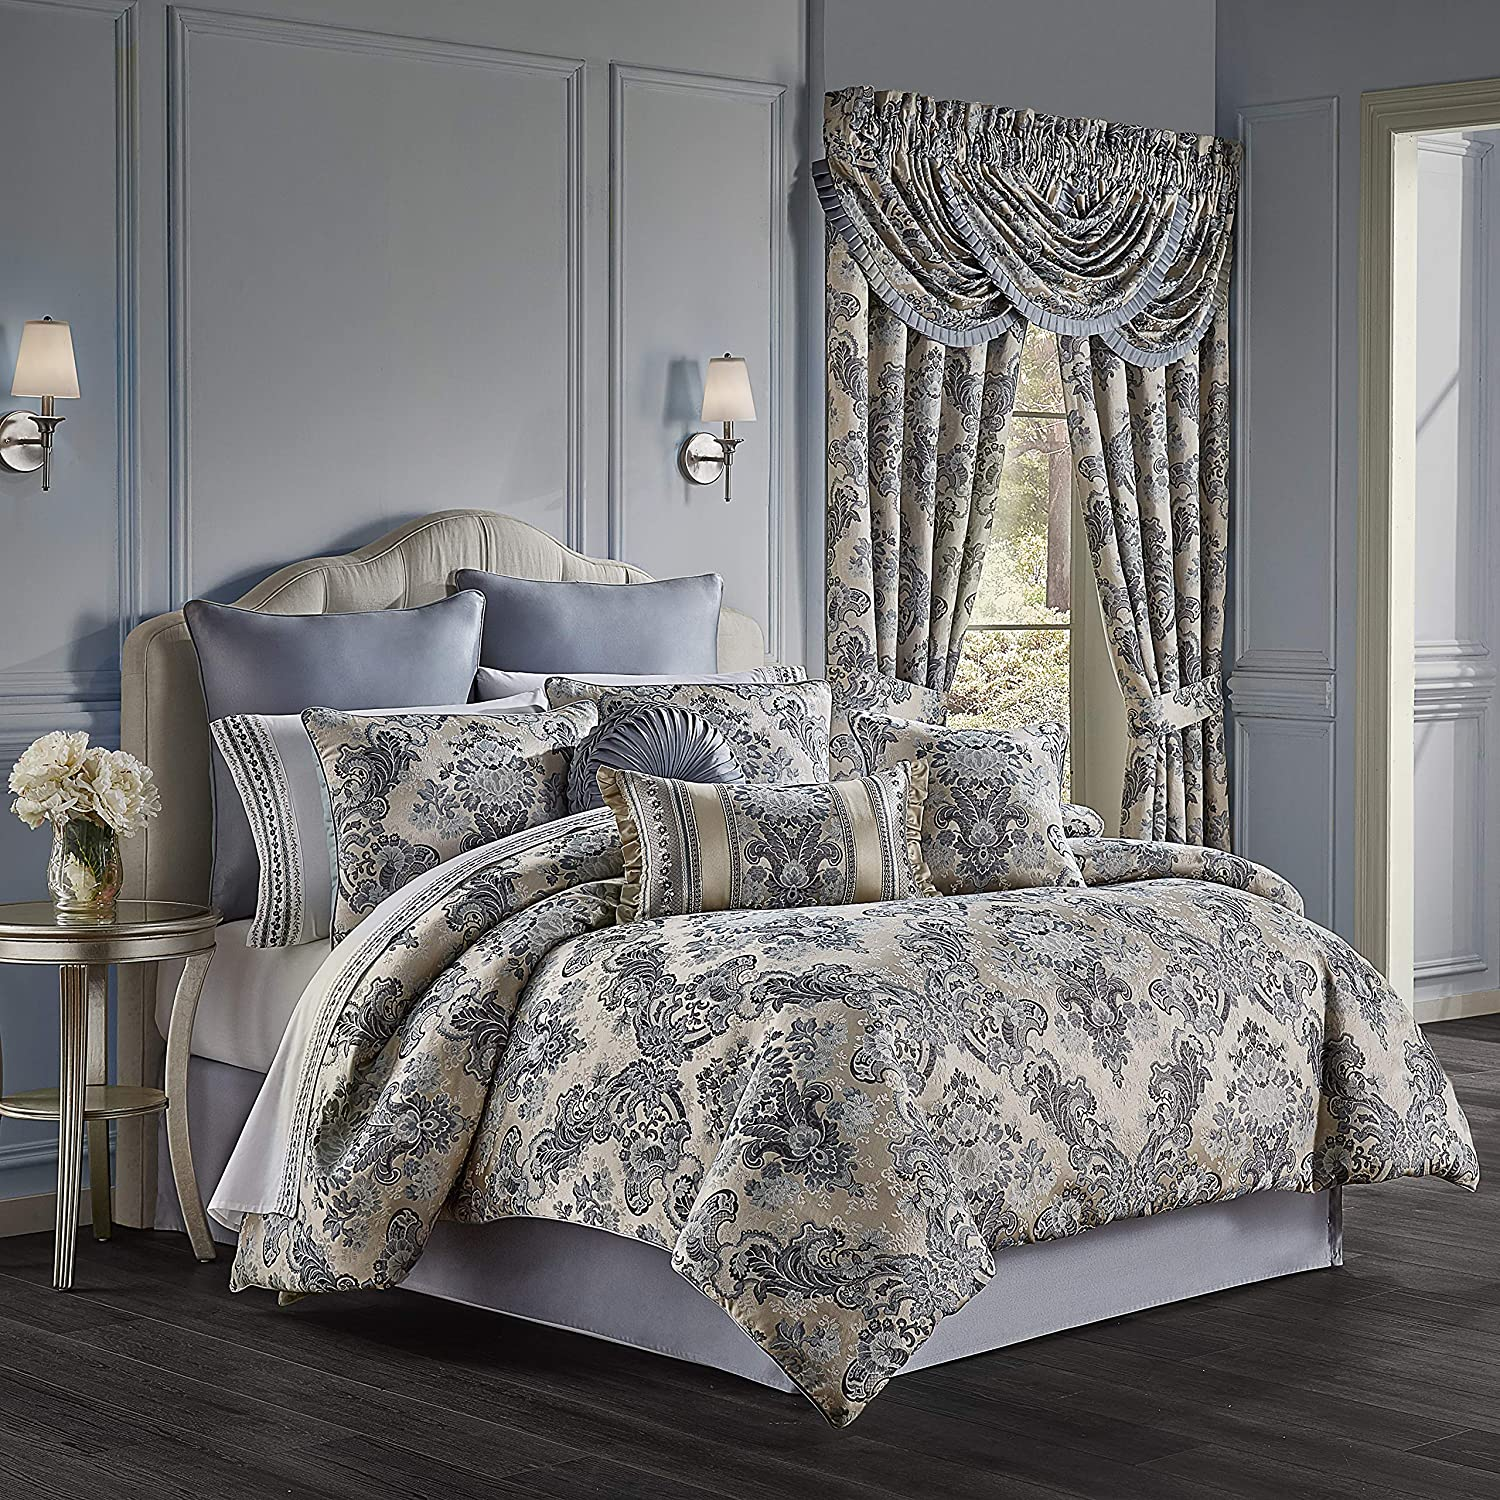 Five Queens Court Geraldine Woven Damask Discount mail order Floral Jacquard Luxury Clearance SALE Limited time